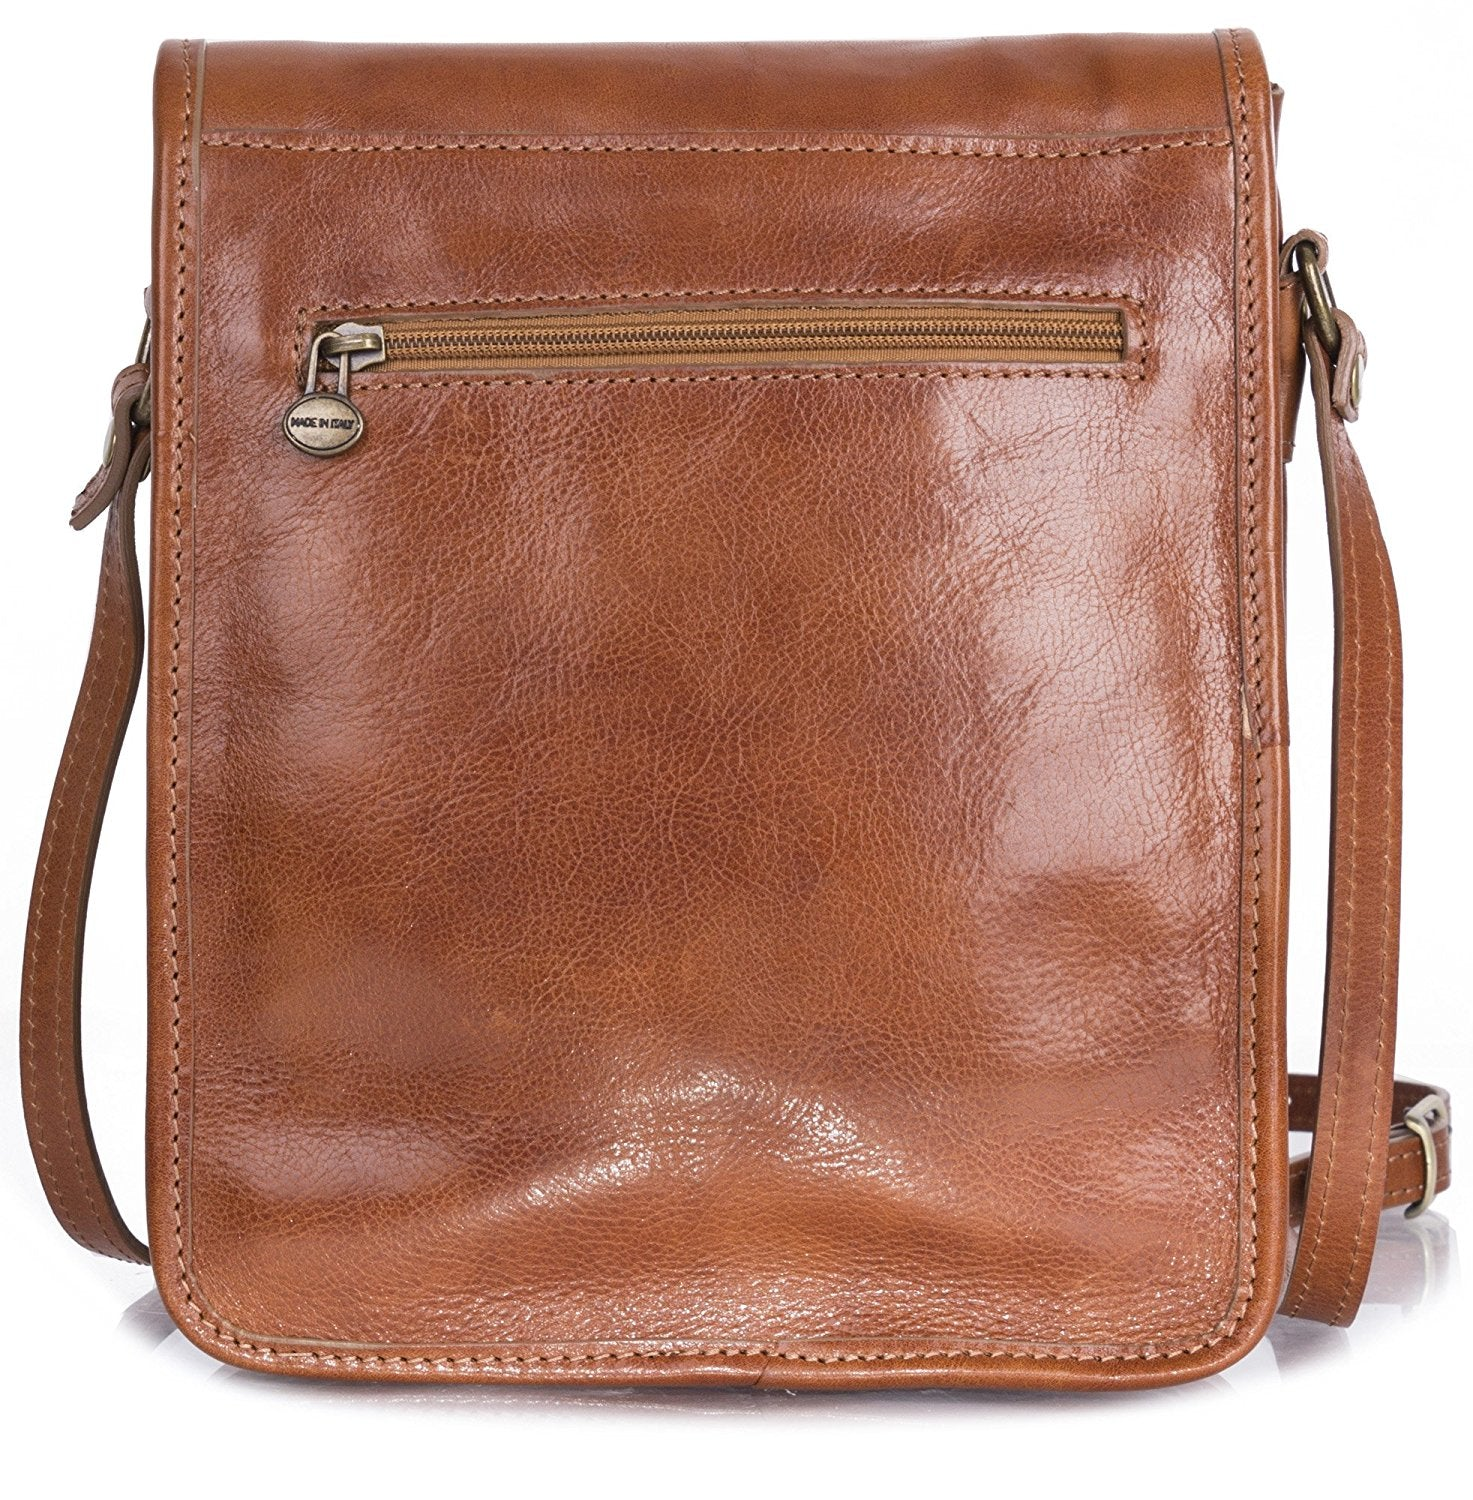 ddd453b671 Cavallo Scuro Mens Genuine Leather Italy Cross Body Briefcase Office  Shoulder Bag